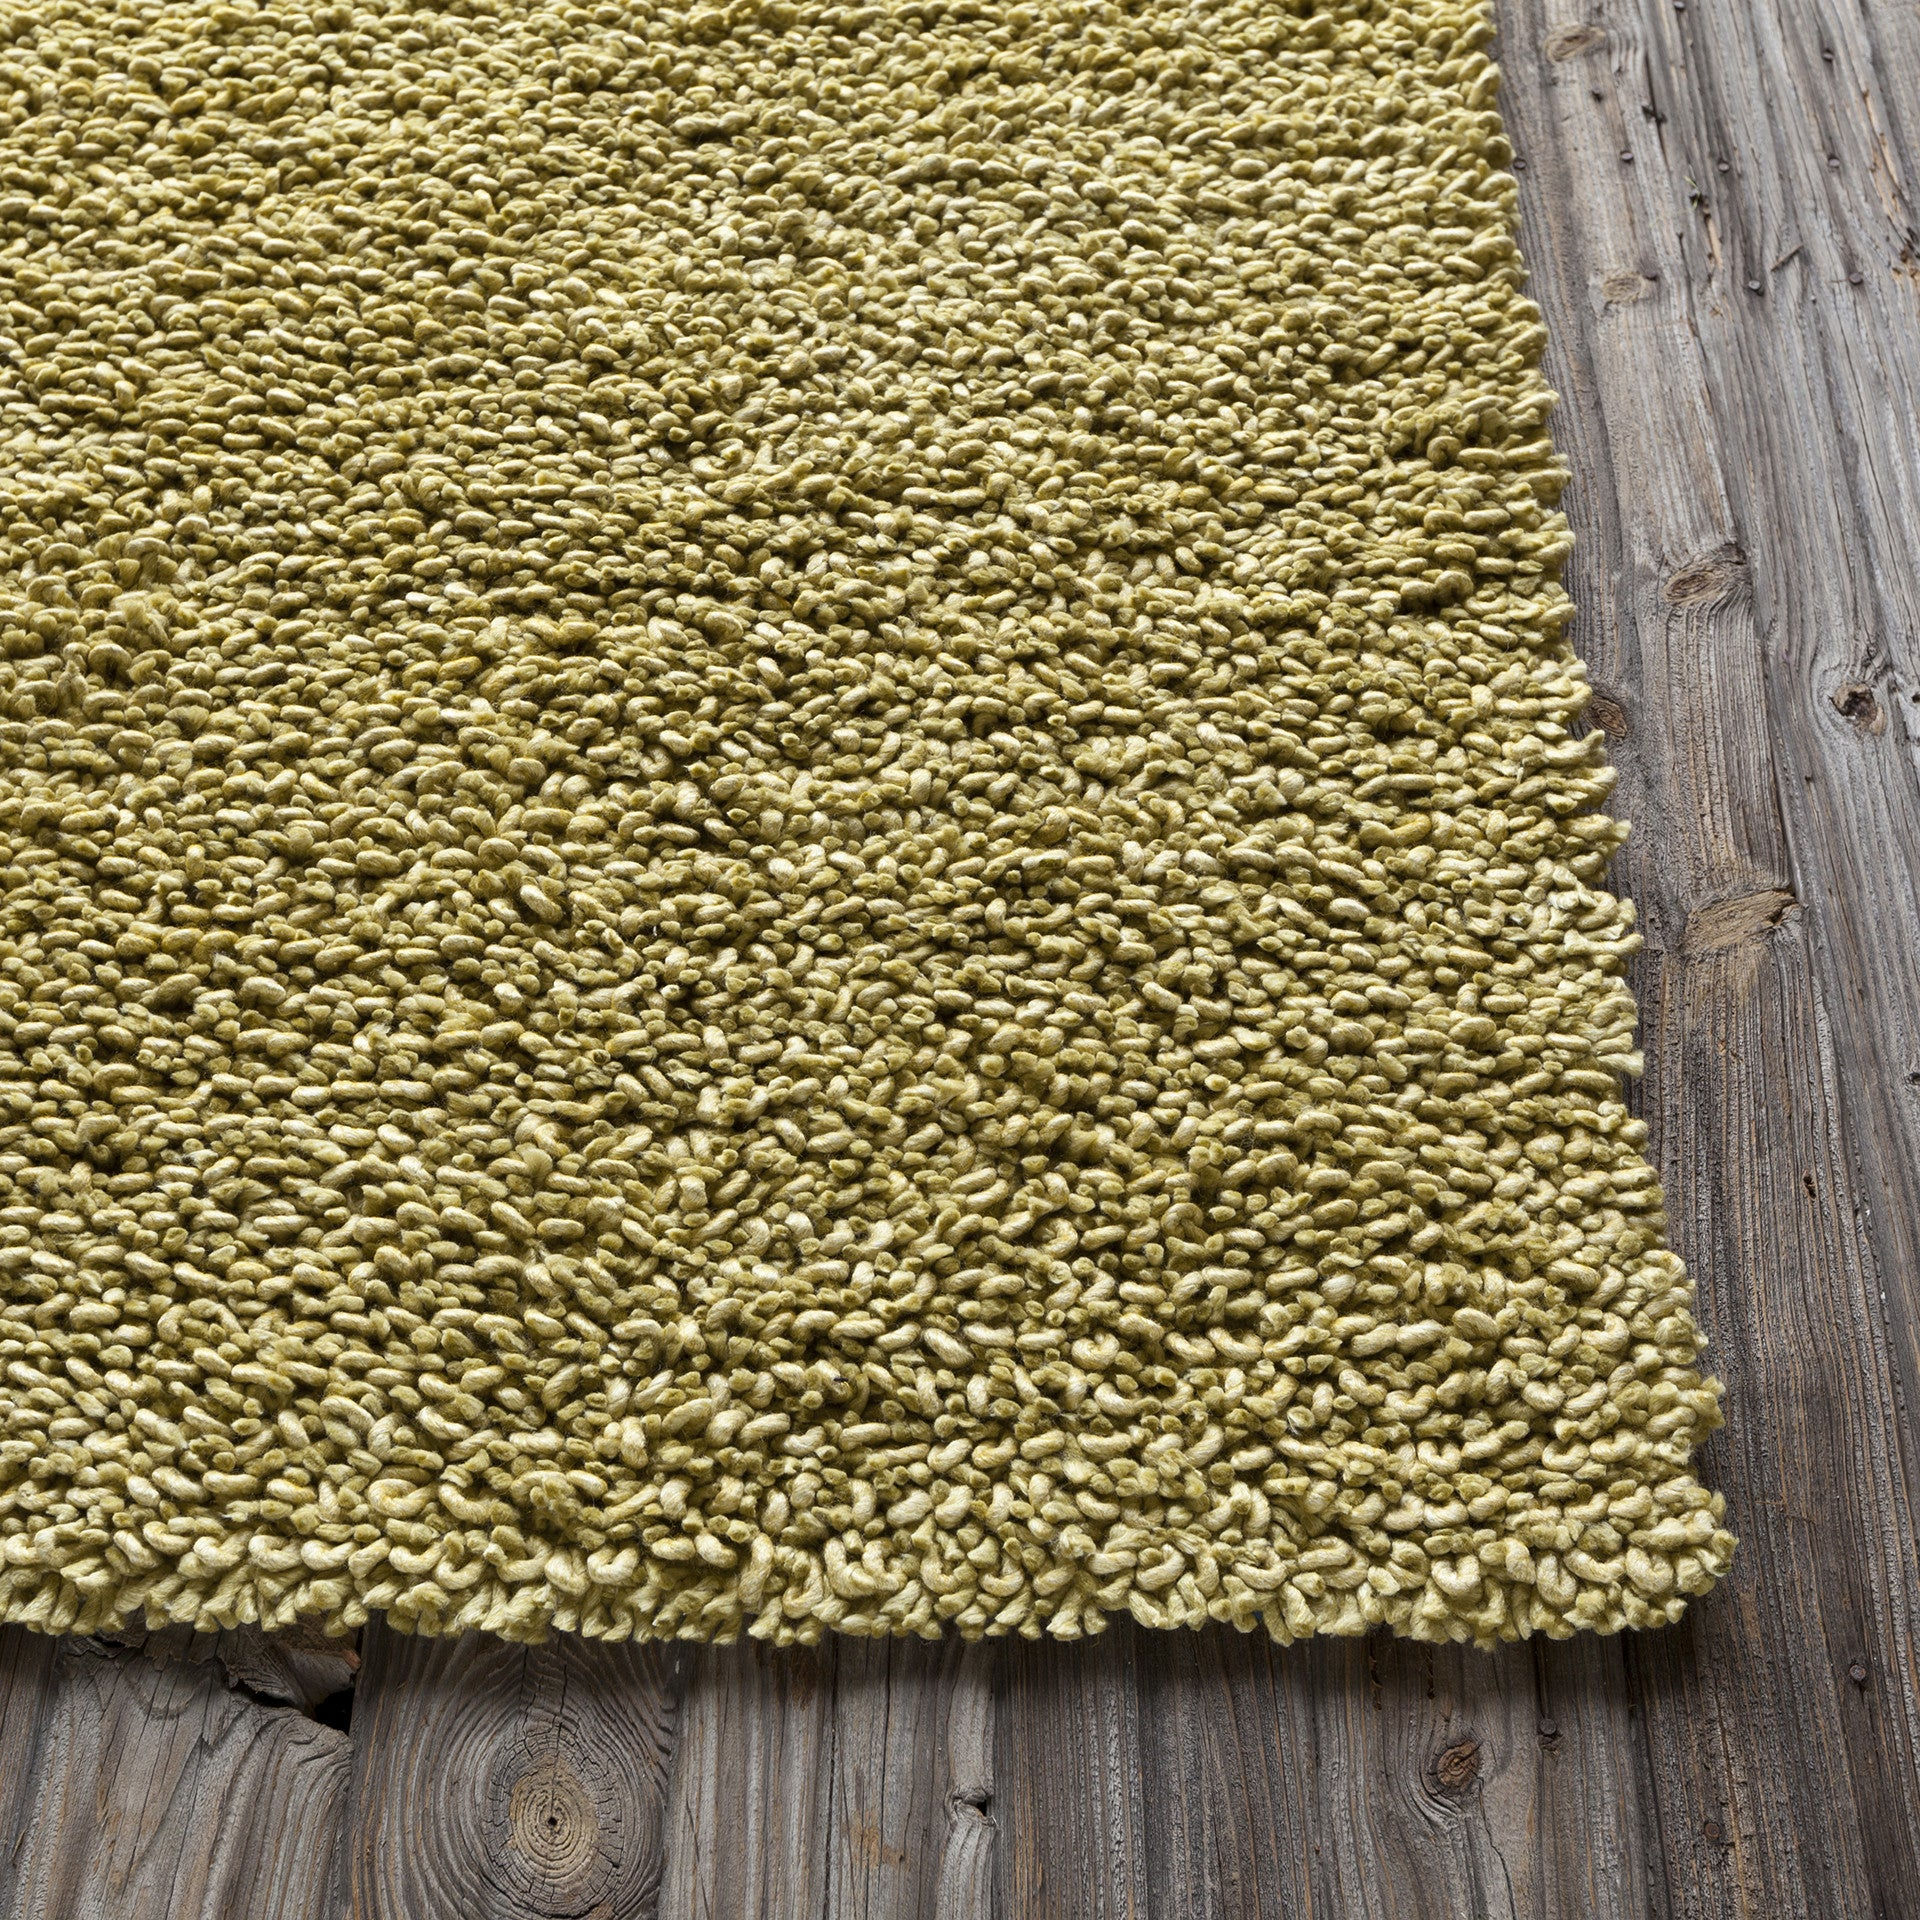 Zeal Collection Hand-Woven Area Rug In Olive Green Design